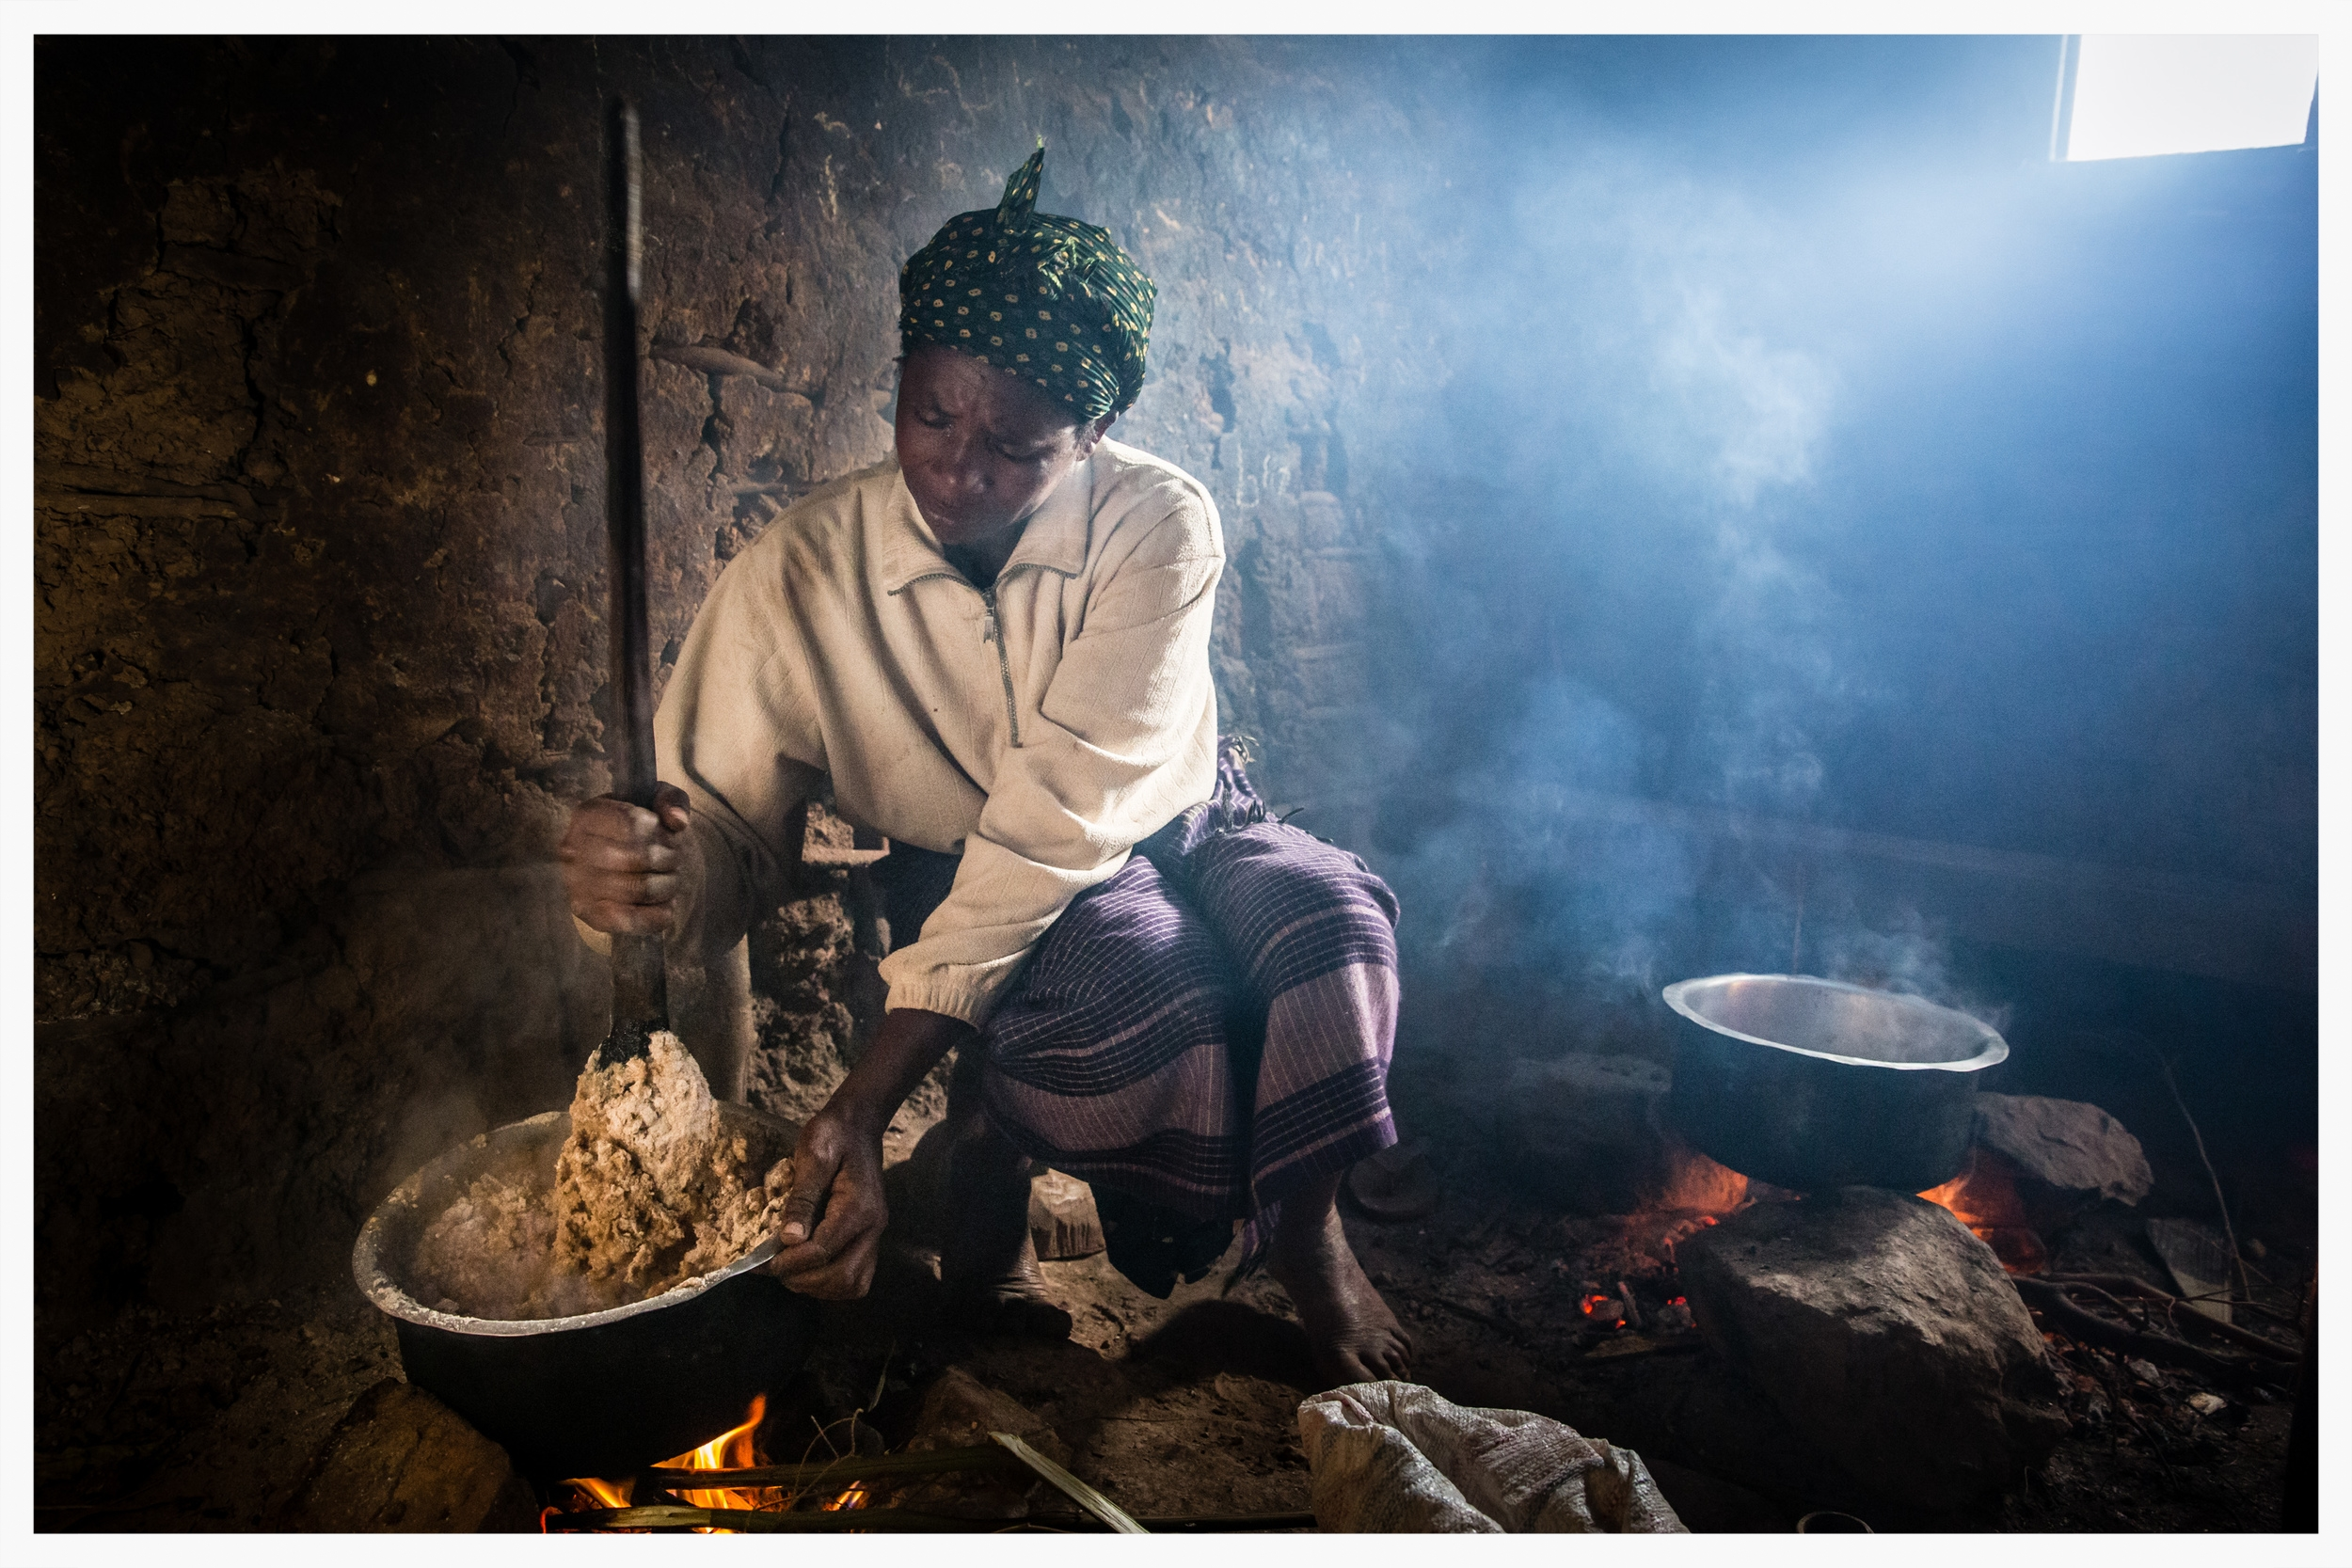 Making bread the traditional way in Kabale district, south west Uganda. Photo © Marcus Perkins